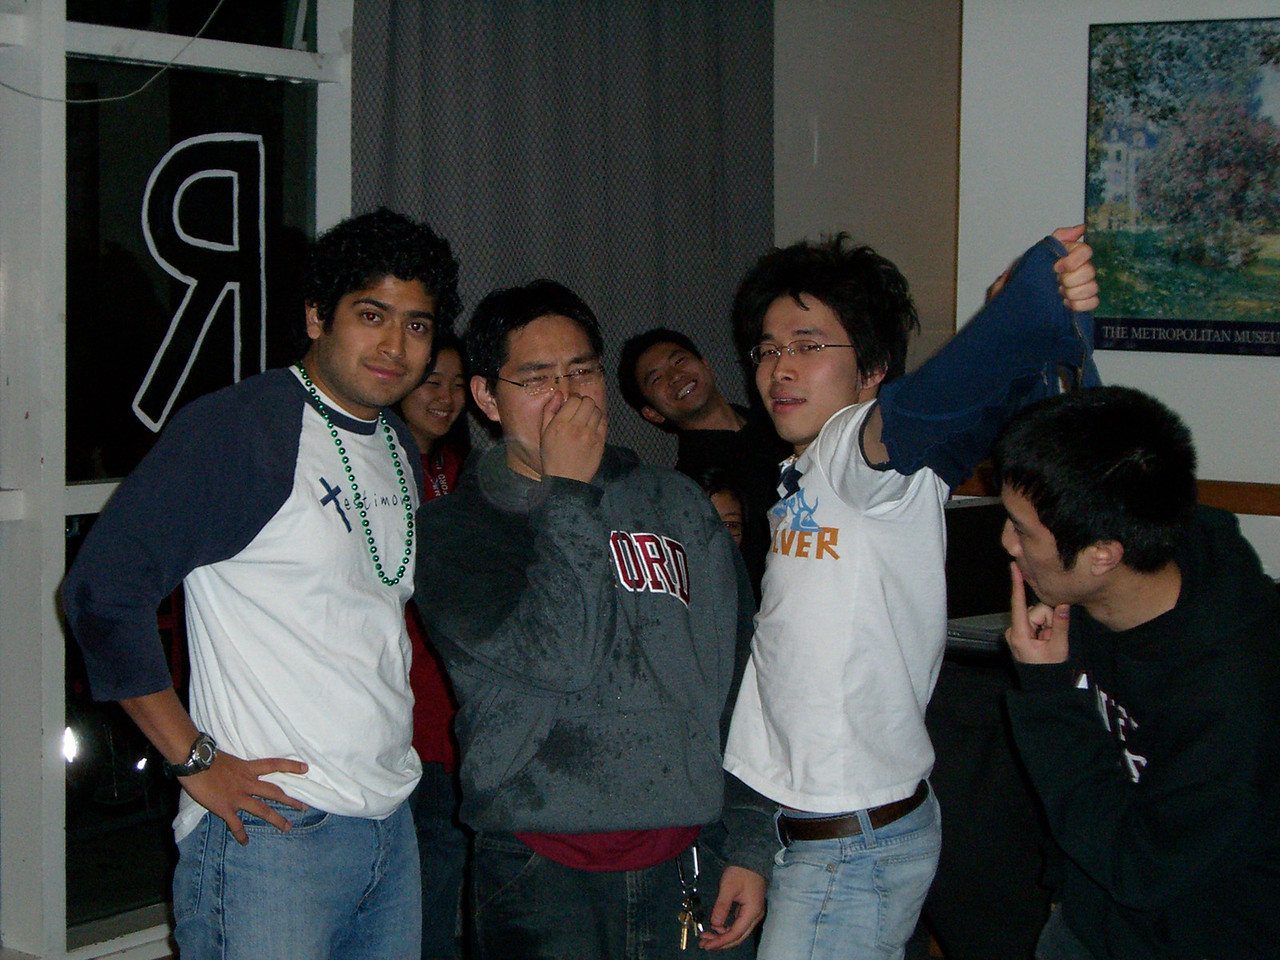 2006 03 01 Wed - David Chiang's B-day - Pablo Pozo, David Chiang, Hyungsoo Kim, & Michael Lin 1